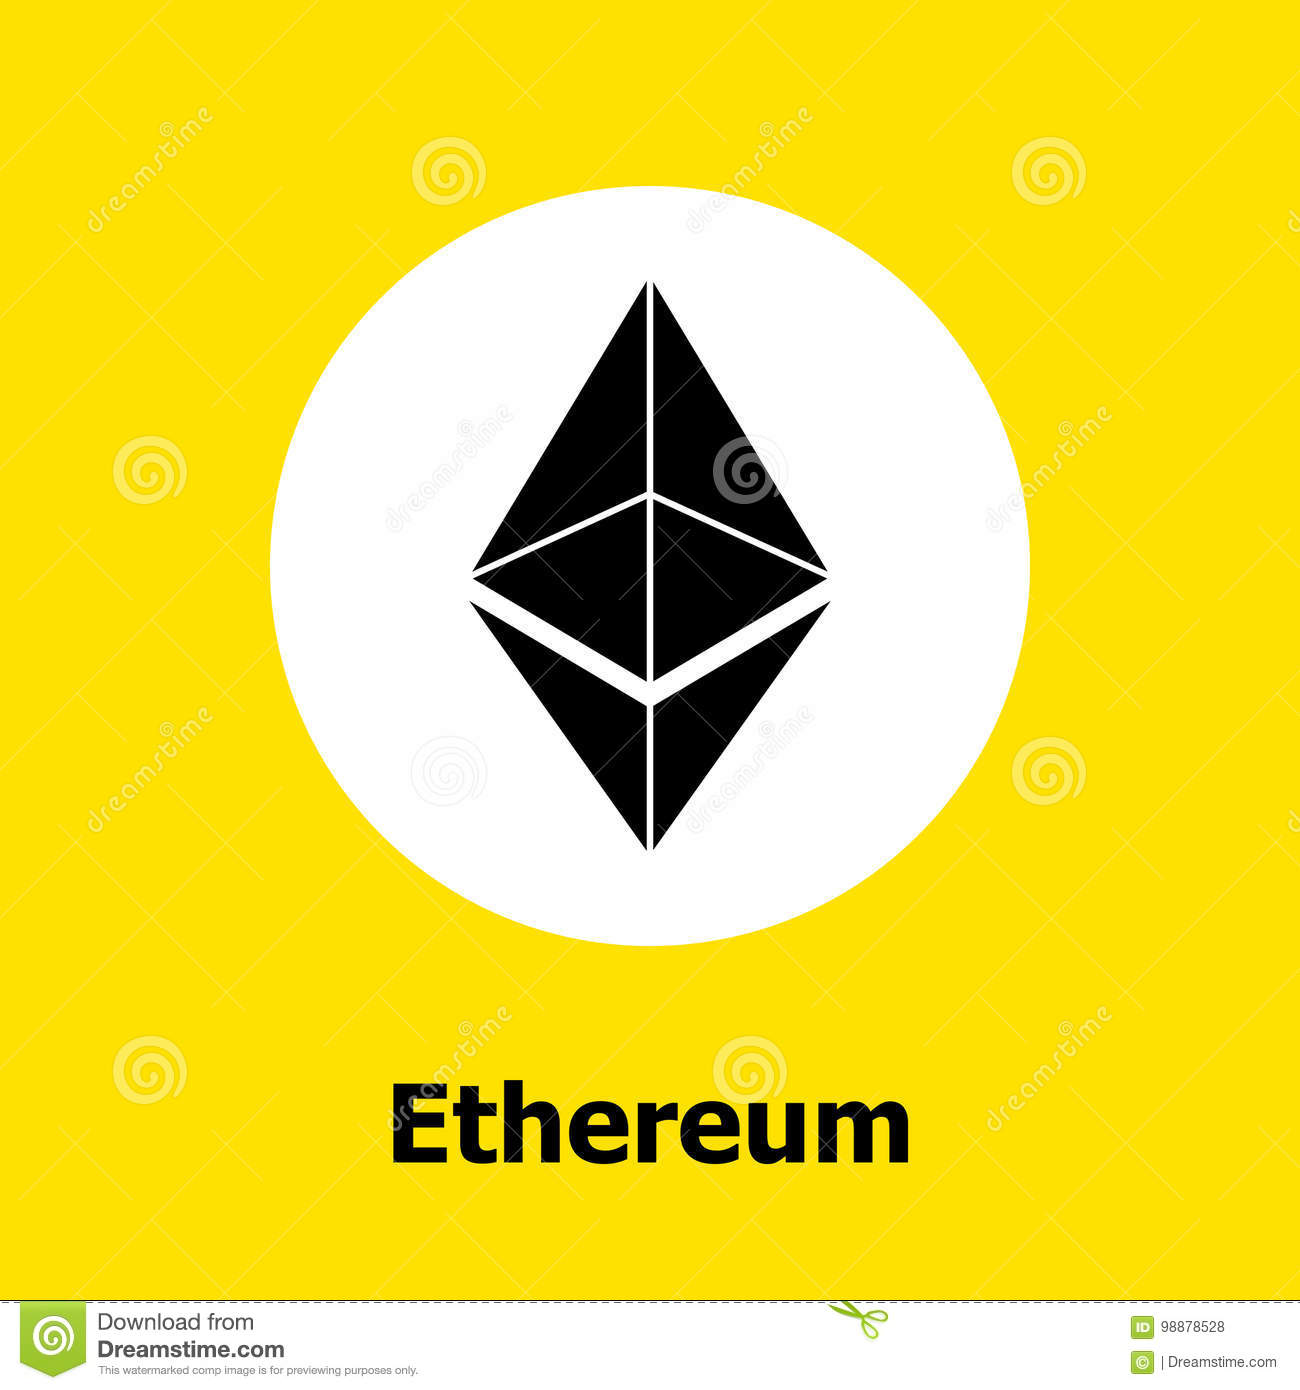 Ethereum Cryptocurrency Blockchain Flat Icon A Yellow Background Vector Sign